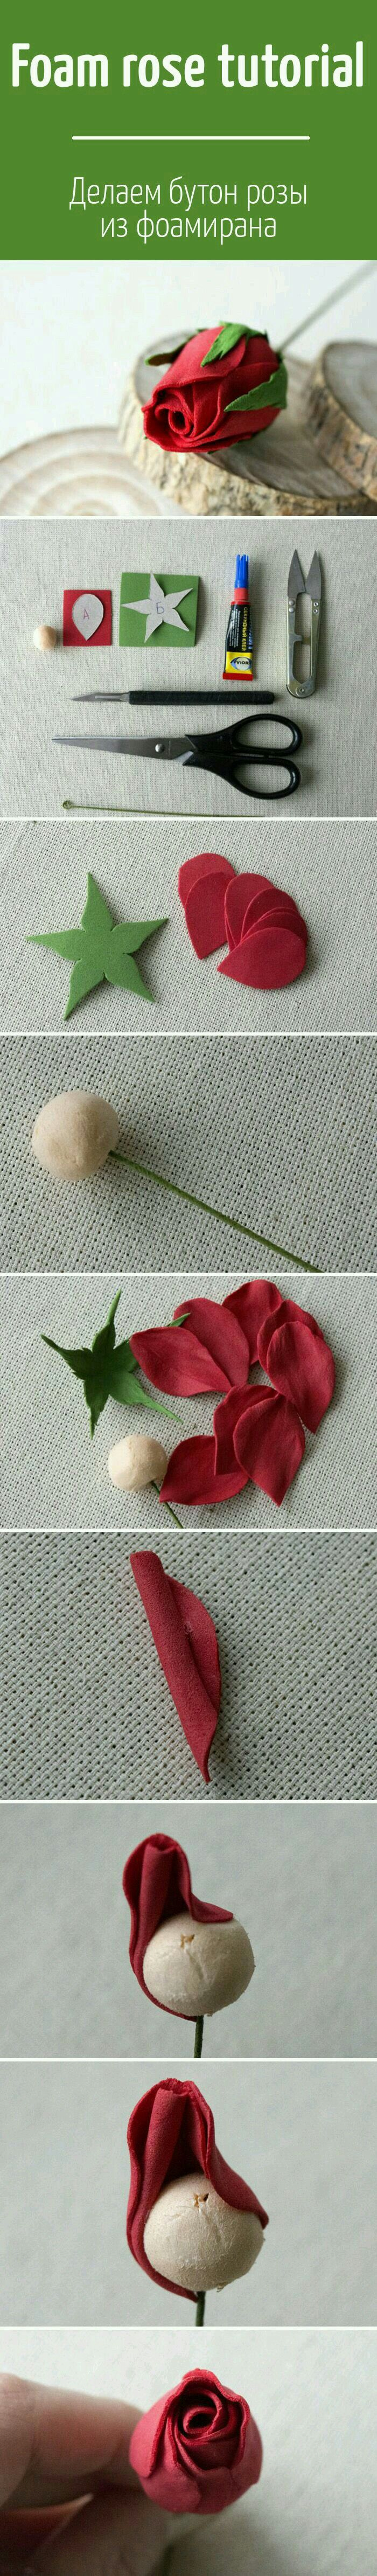 Make your own stunning felt flower rose with this pattern and step by step tutorial by handcrafted lifestyle expert Lia Griffith